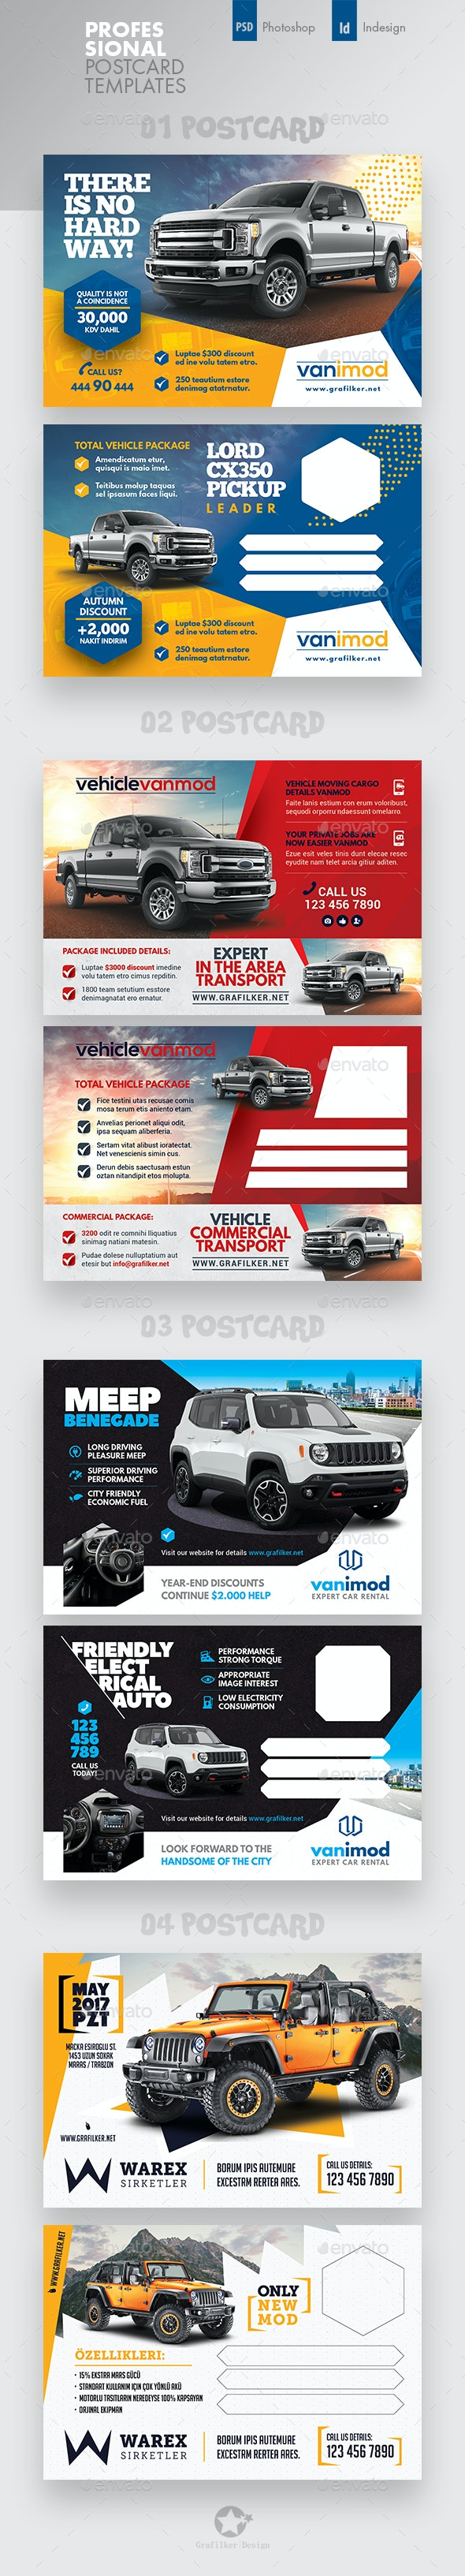 Car Sales Postcard Bundle Templates - Cards & Invites Print Templates